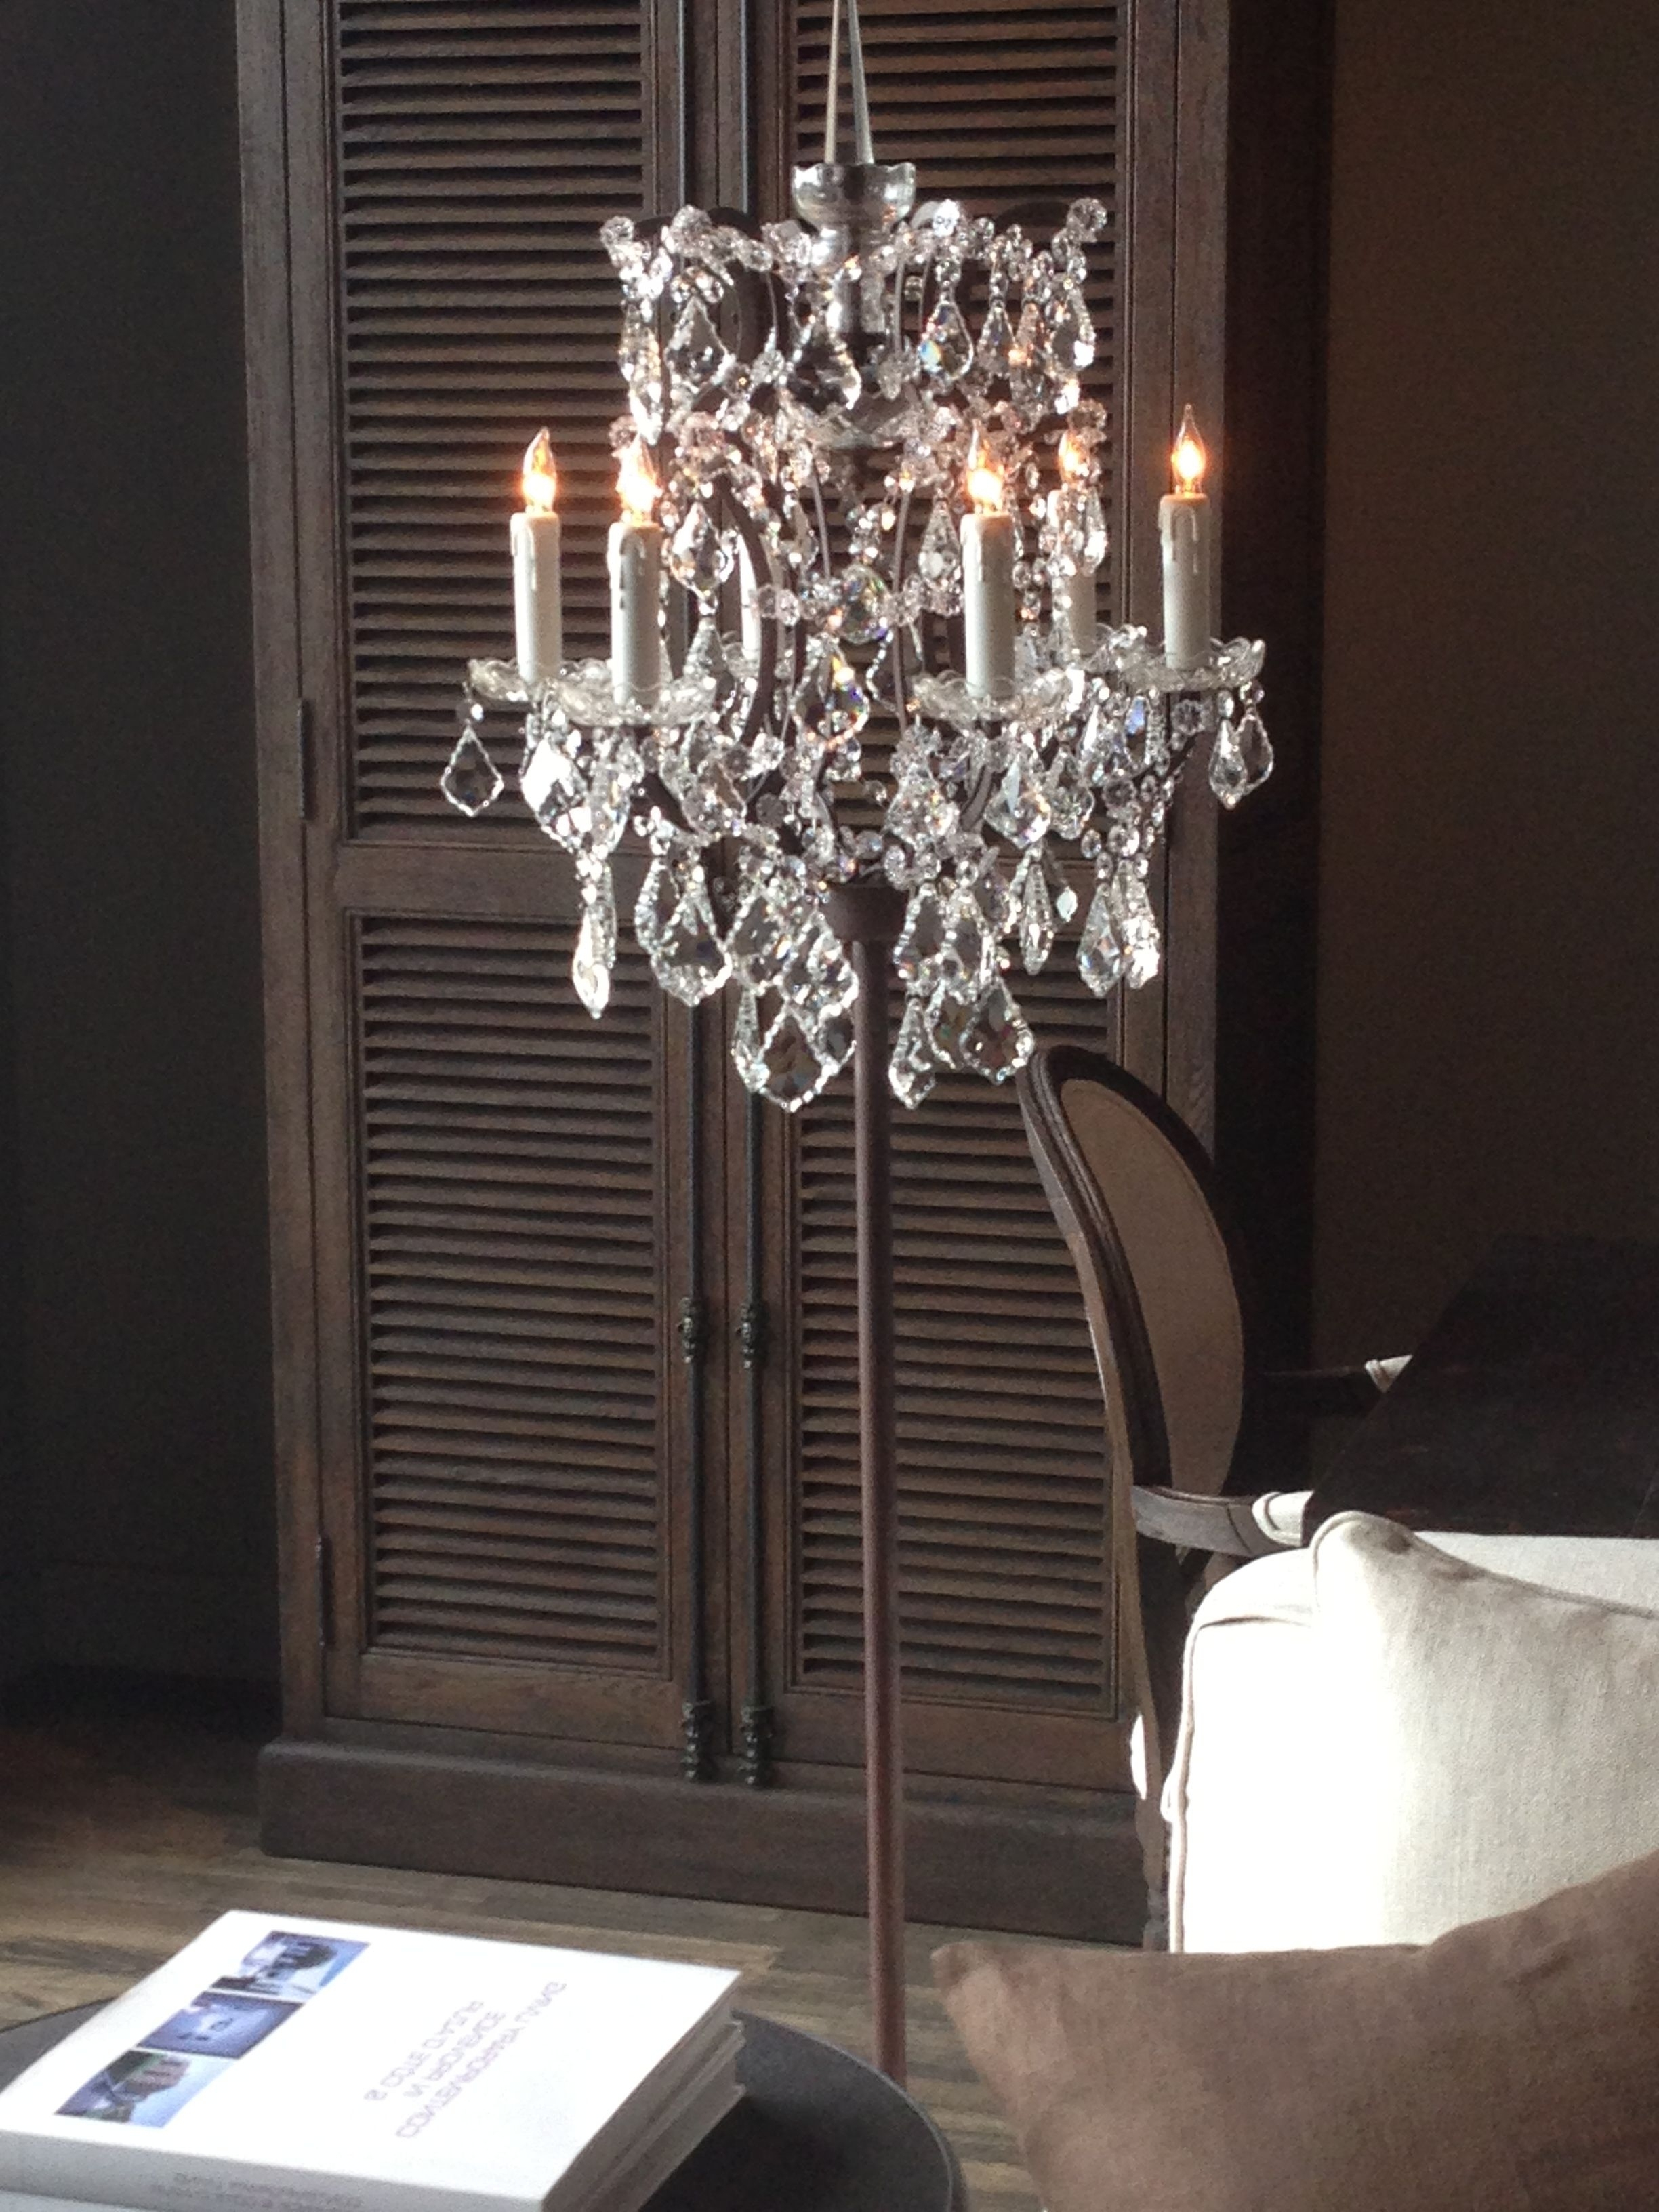 Preferred Chandelier Floor Lamp; I Own This Floor Lamp And It Is So Beautiful With Free Standing Chandelier Lamps (View 14 of 20)